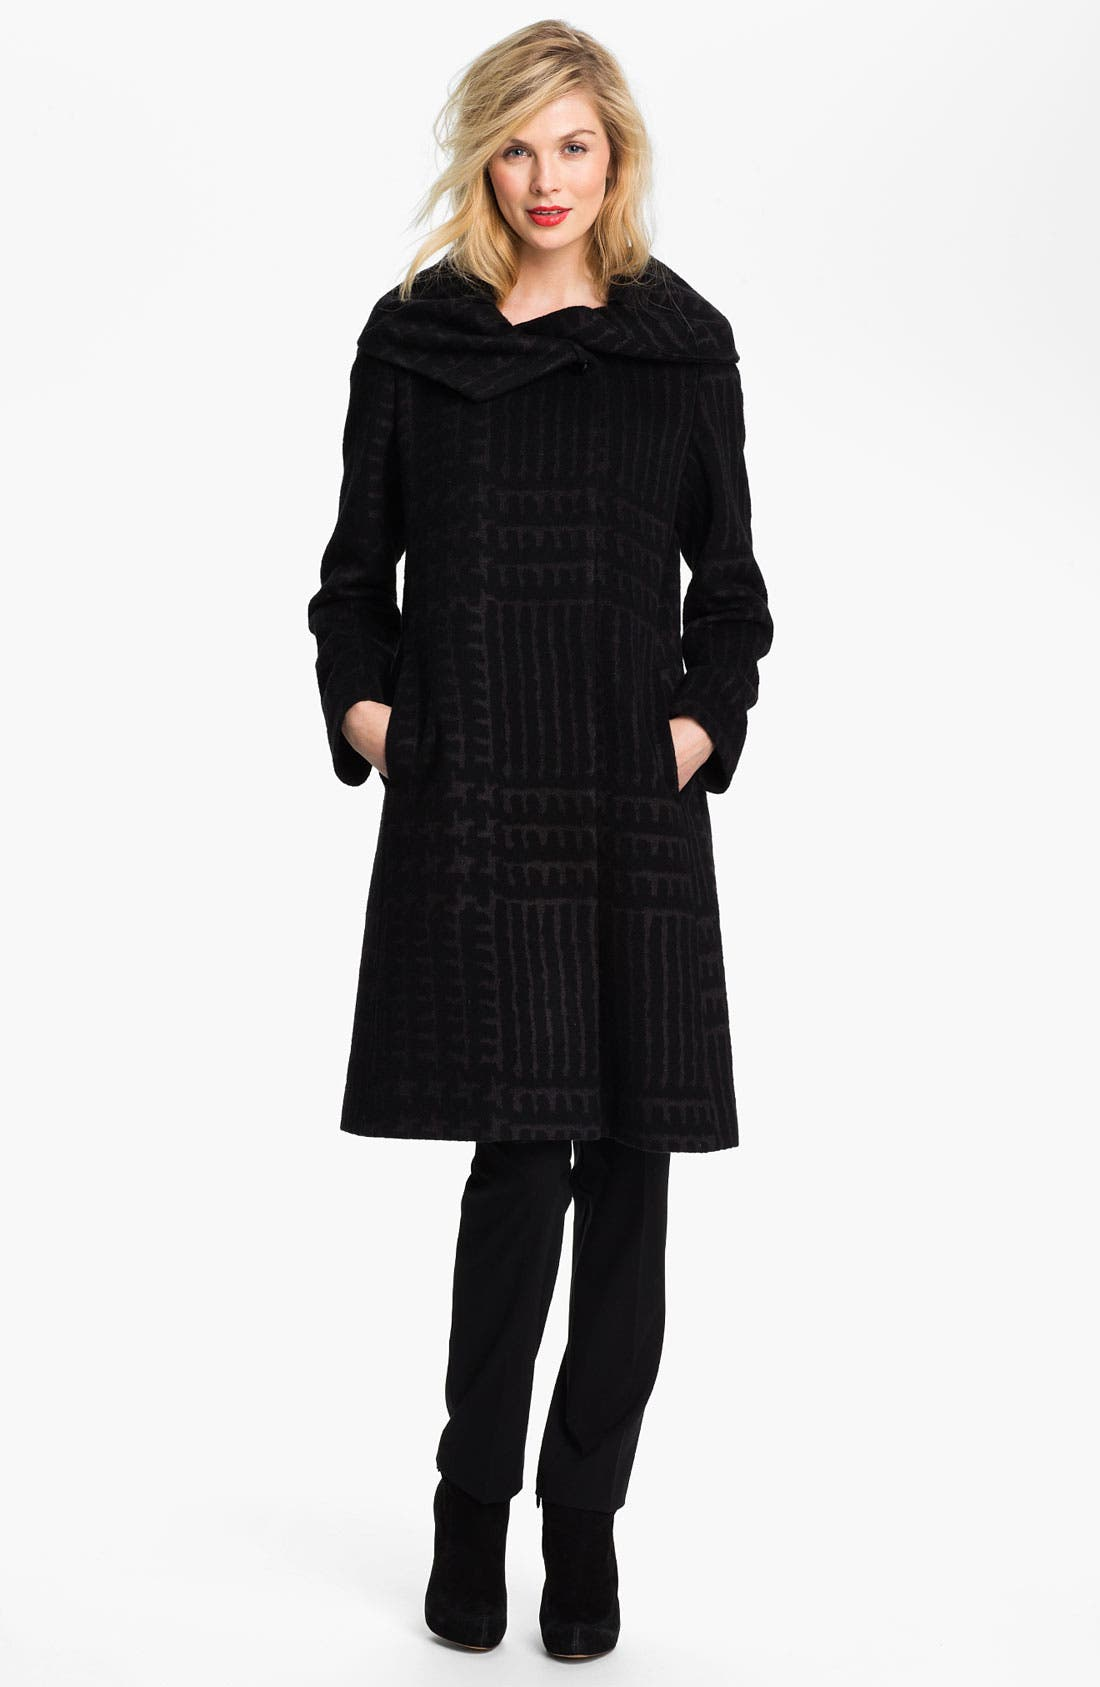 Alternate Image 1 Selected - Cinzia Rocca Patterned Wool Blend Coat